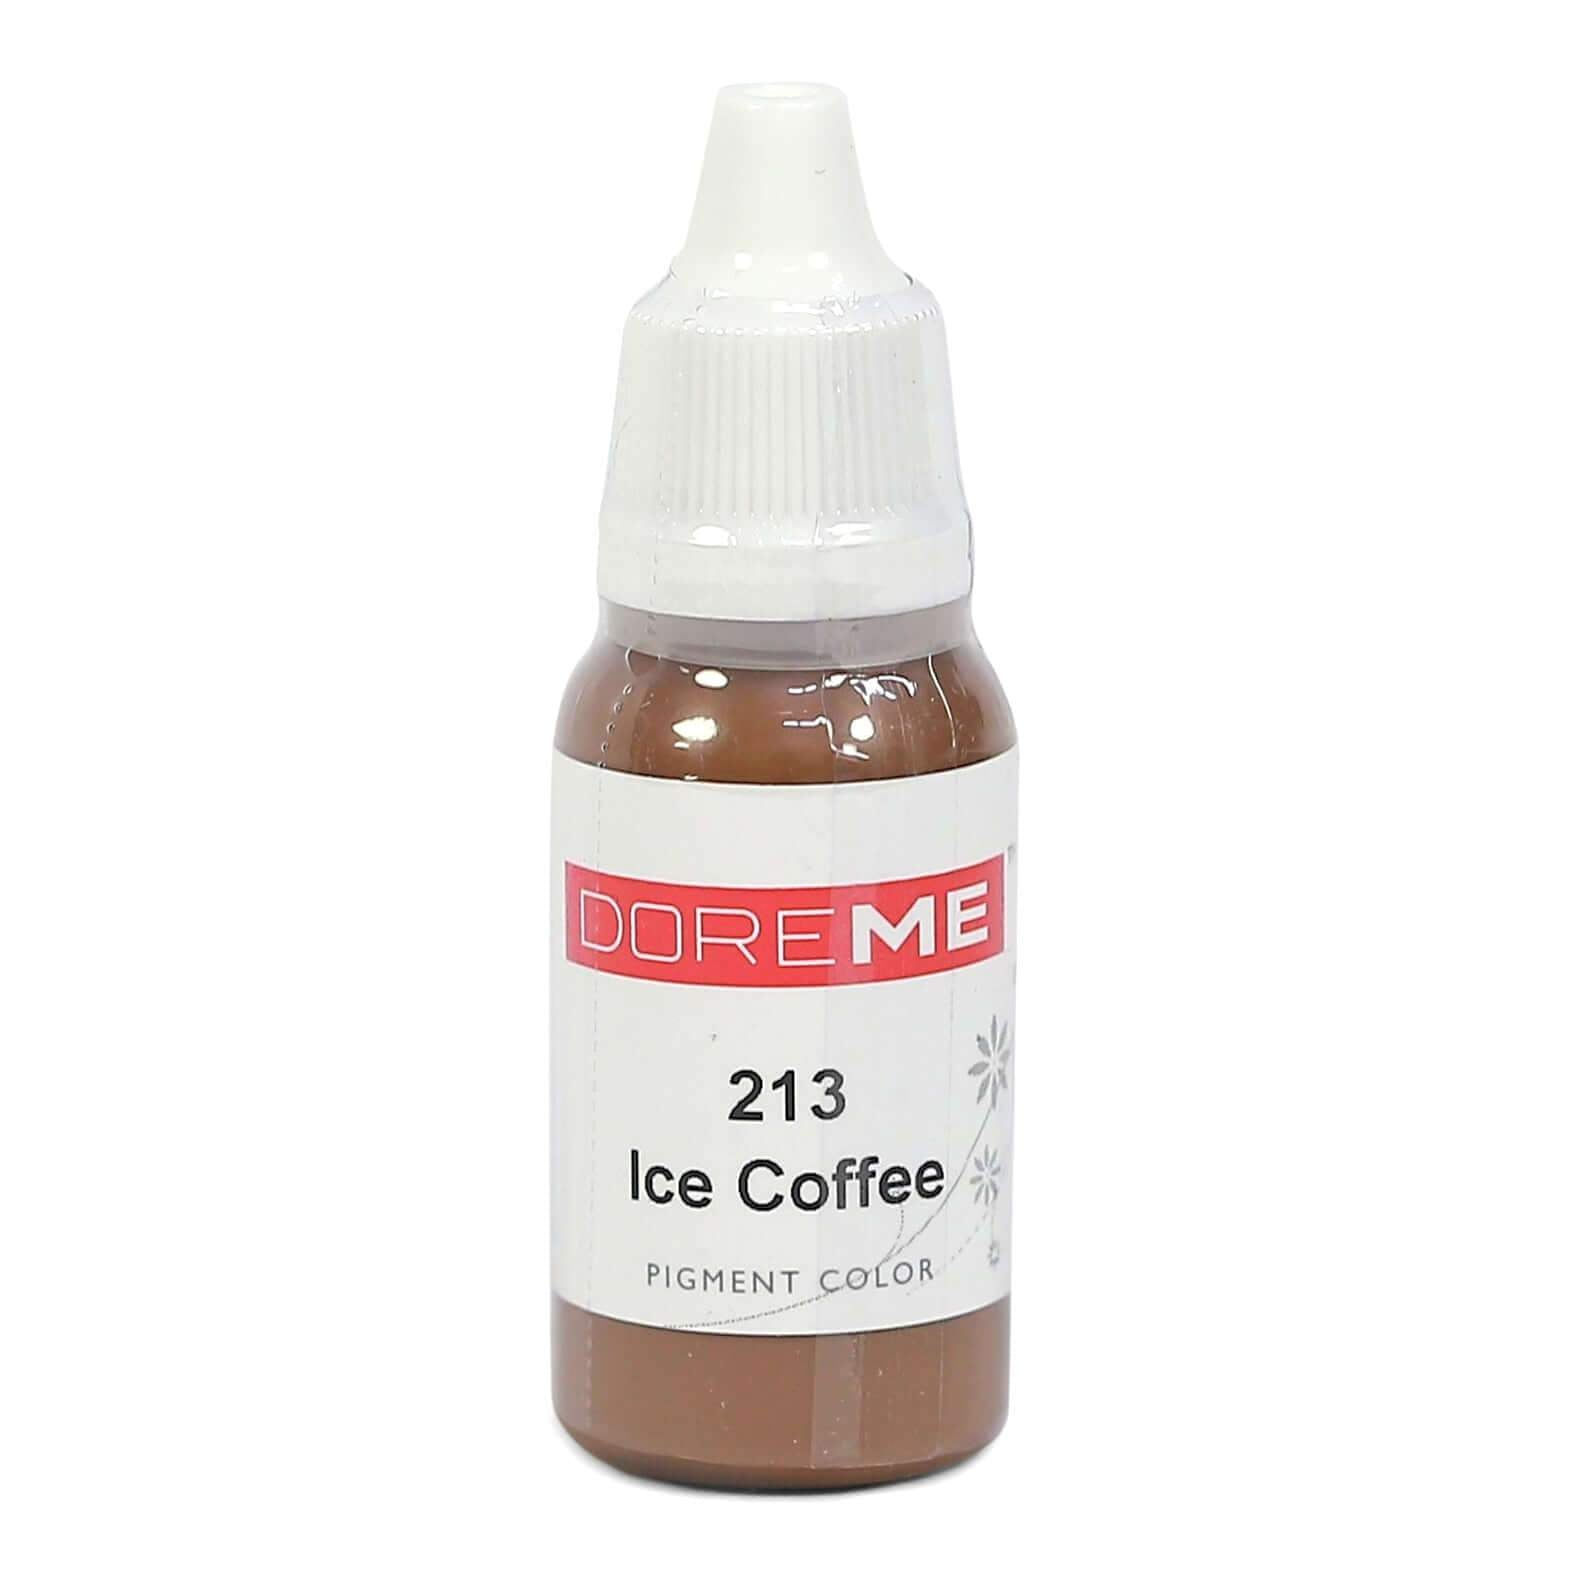 Permanent Makeup pigments Doreme Micropigmentation Eyebrow, Eyeliner, Lip Colours 213 Ice Coffee (c) - Beautiful Ink UK trade and wholesale supplier